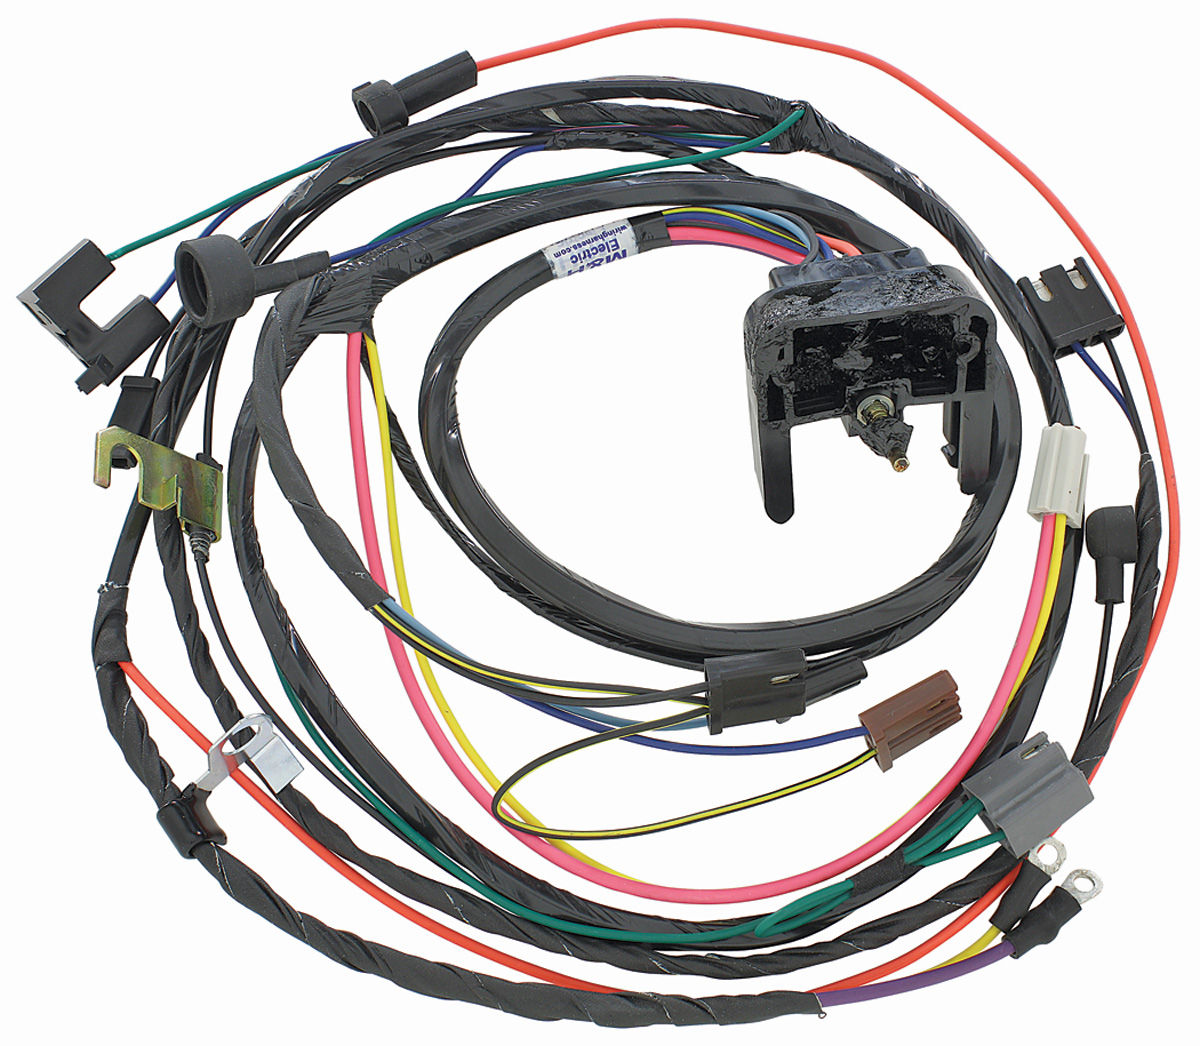 1970 chevelle wiring harness data wiring diagram update1970 chevelle wiring harness